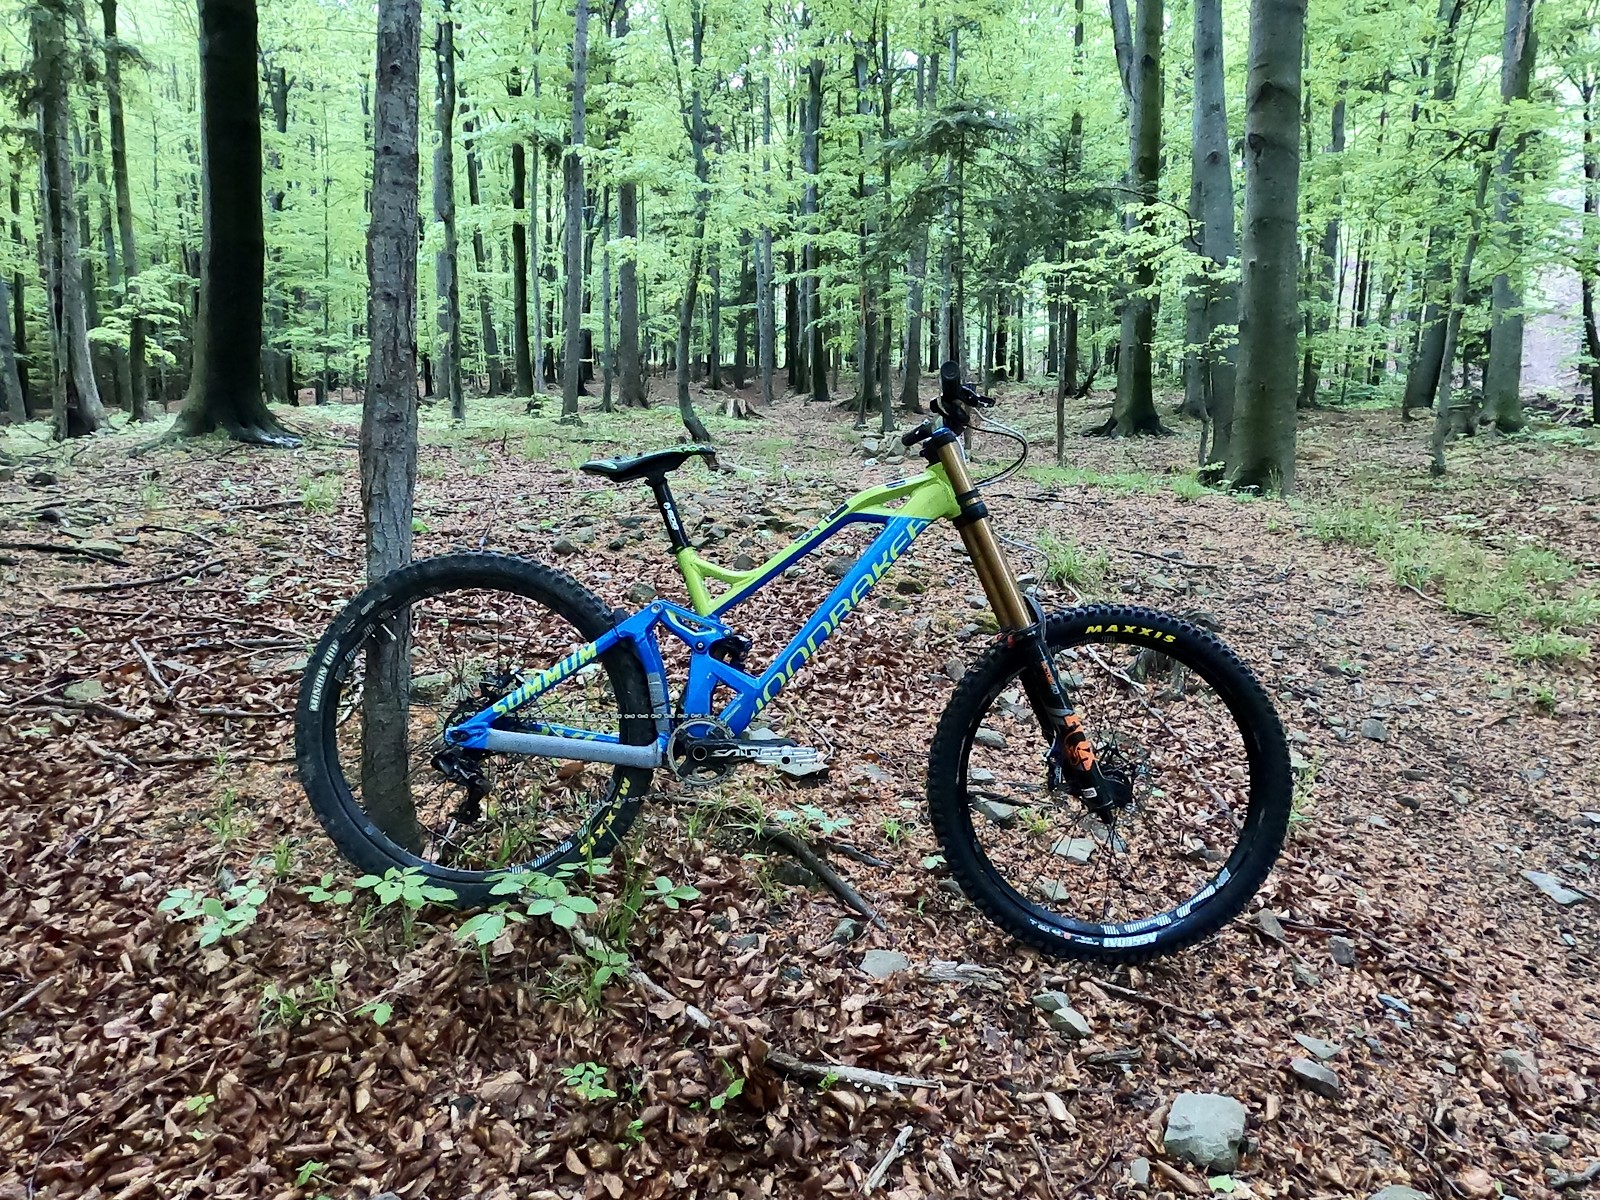 Mondraker Summum on Fox Suspension